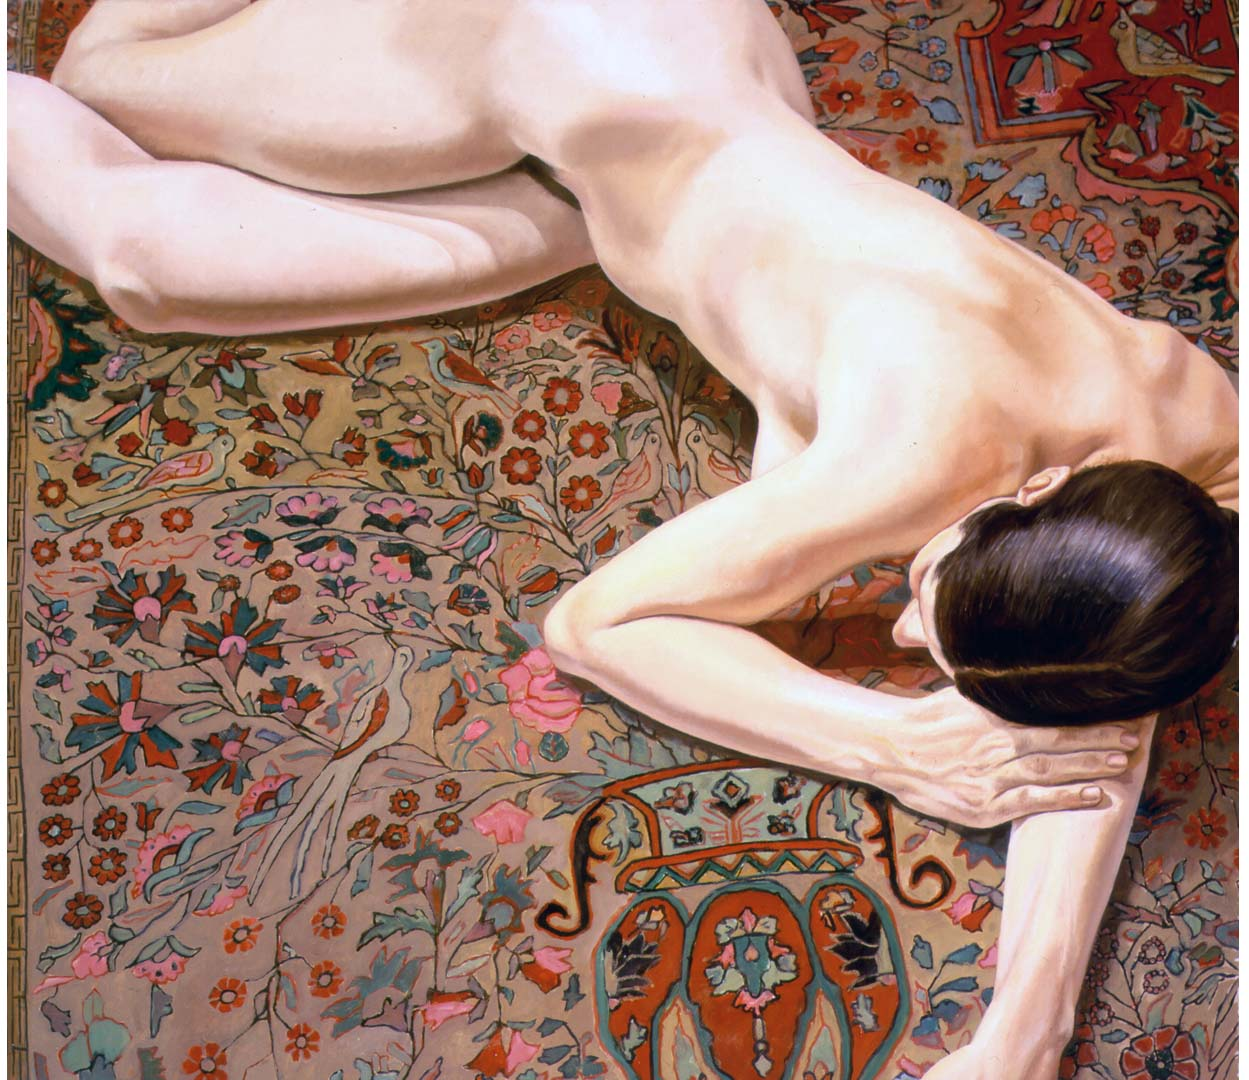 1972 Female Nude on Persian Rug Oil on Canvas 42 x 48